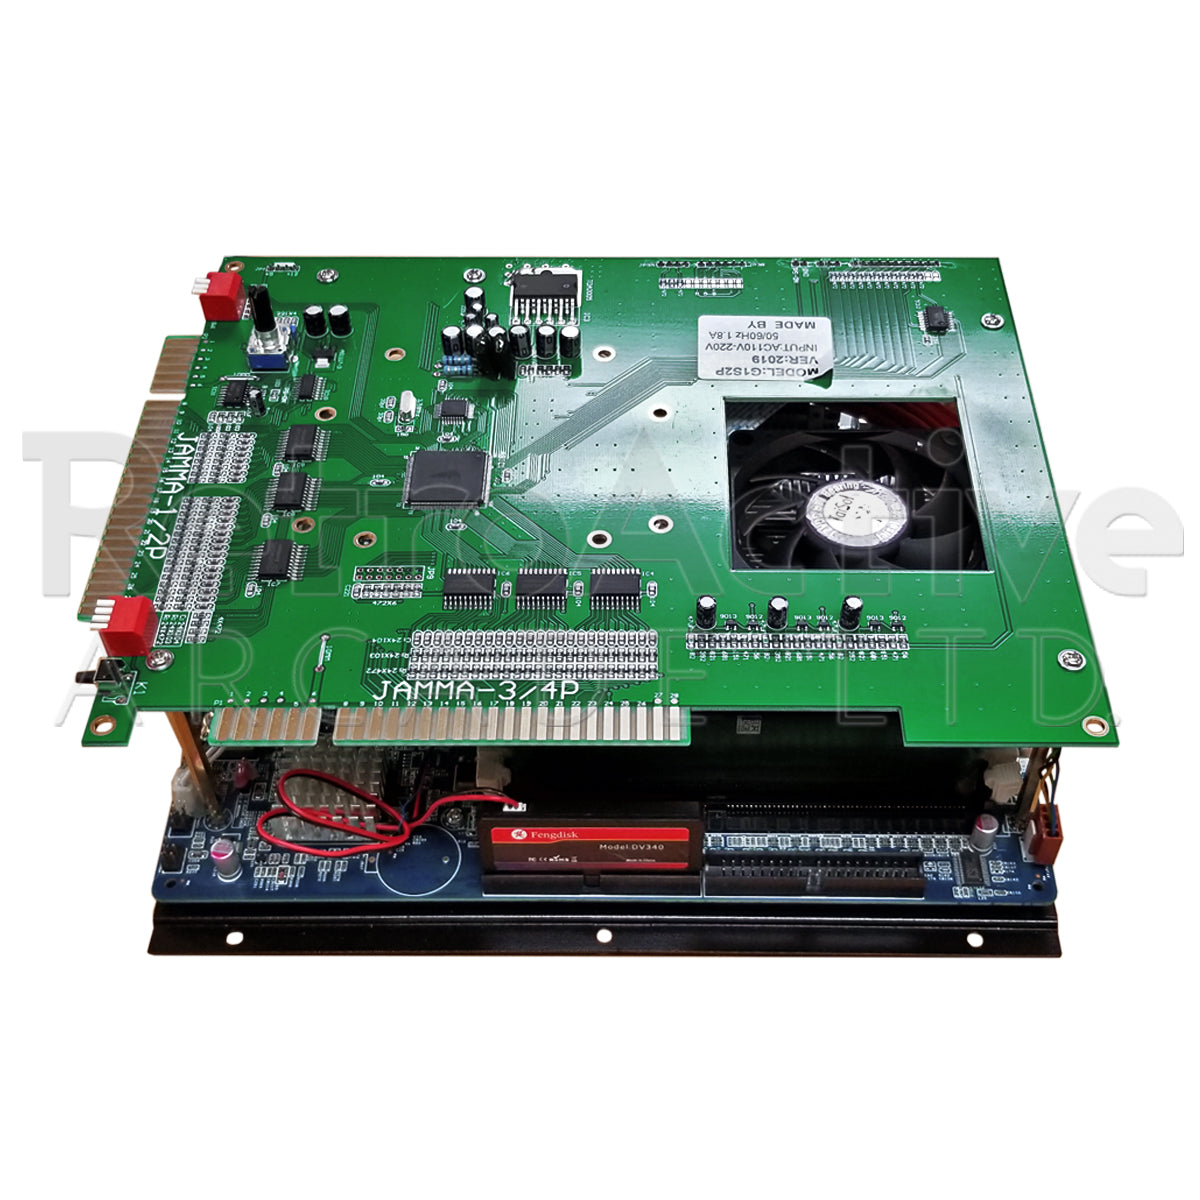 2100-in-1 JAMMA Board